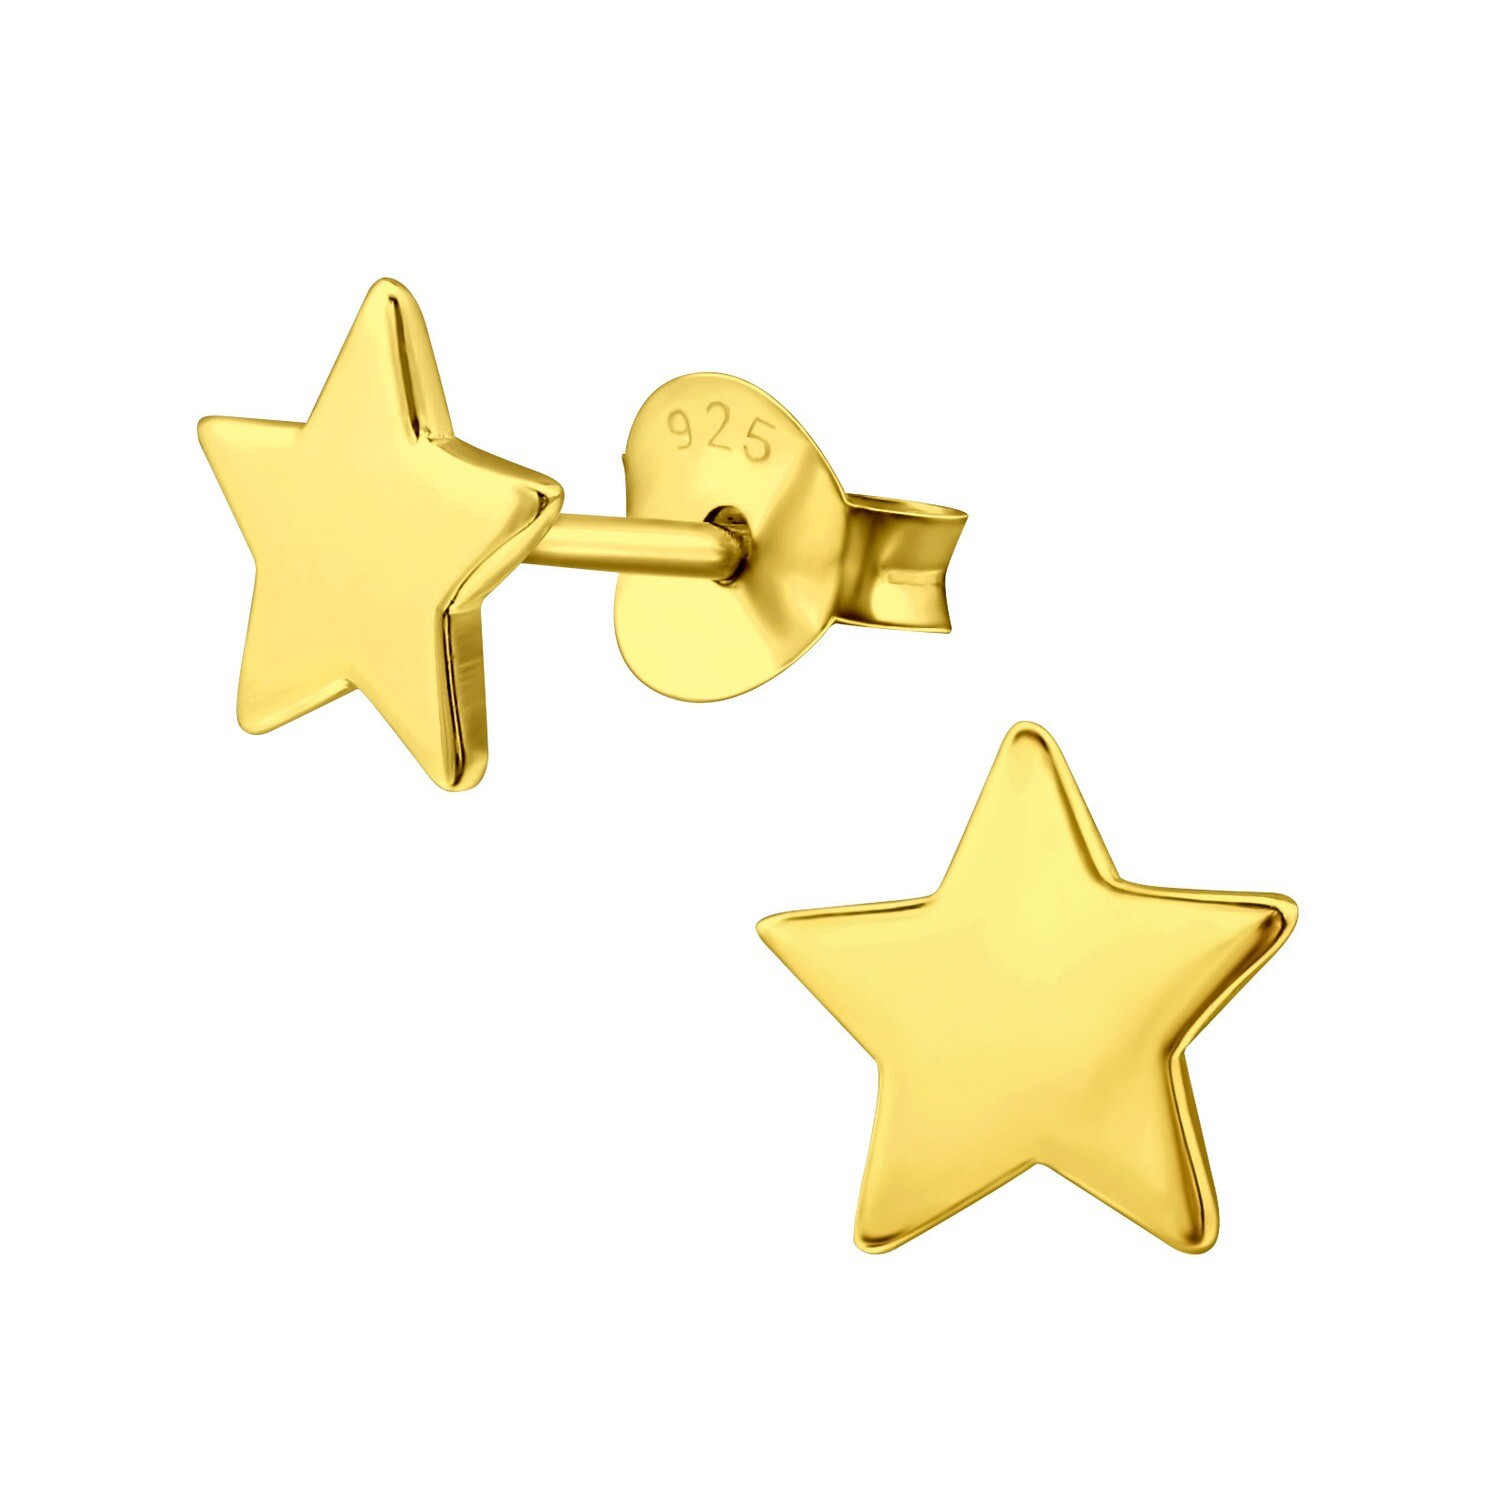 P40-26 Star Posts - Gold Plated Sterling Silver